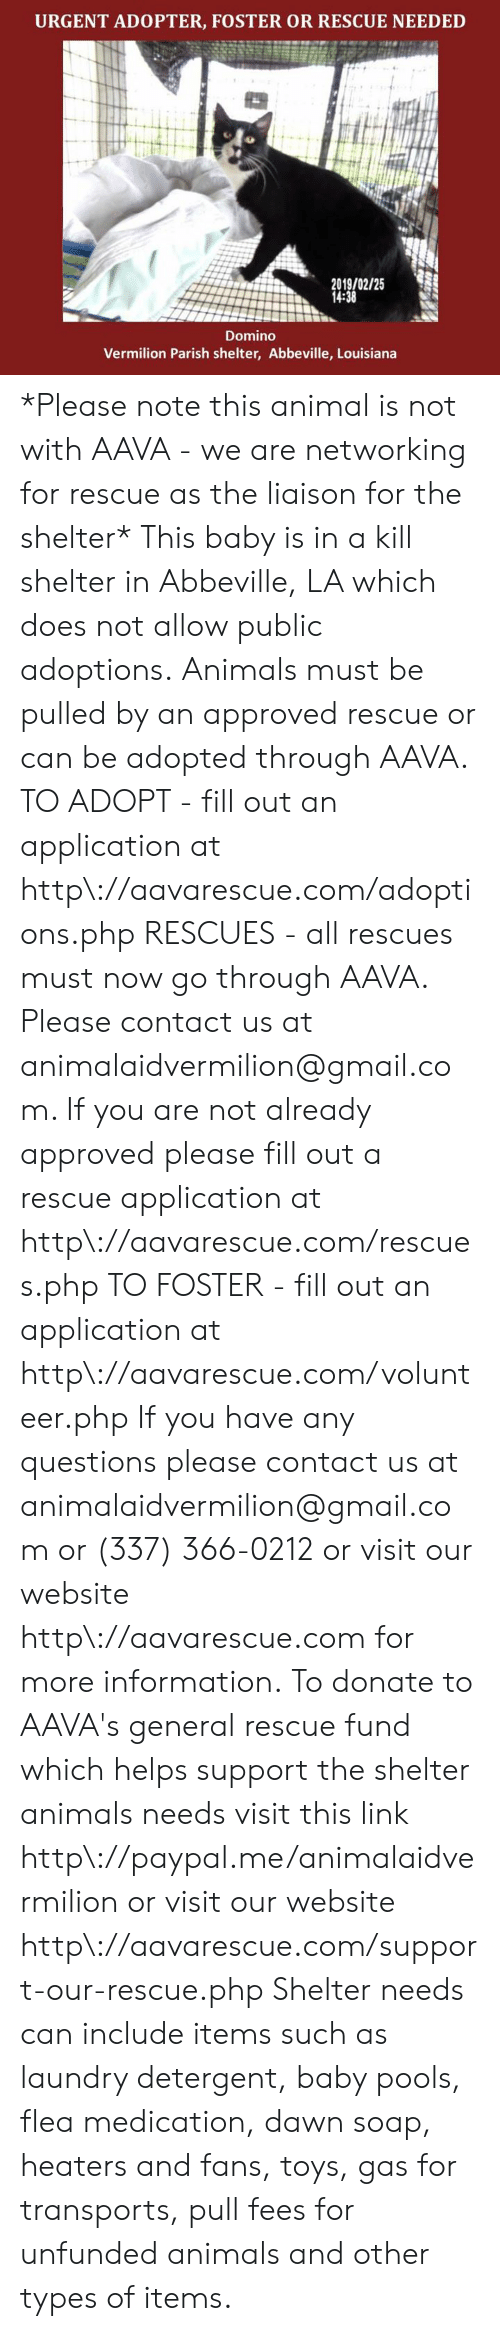 Fill Out: URGENT ADOPTER, FOSTER OR RESCUE NEEDED  2019/02/25  14:38  Domino  Vermilion Parish shelter, Abbeville, Louisiana *Please note this animal is not with AAVA - we are networking for rescue as the liaison for the shelter* This baby is in a kill shelter in Abbeville, LA which does not allow public adoptions. Animals must be pulled by an approved rescue or can be adopted through AAVA.  TO ADOPT - fill out an application at http\://aavarescue.com/adoptions.php  RESCUES - all rescues must now go through AAVA. Please contact us at animalaidvermilion@gmail.com. If you are not already approved please fill out a rescue application at http\://aavarescue.com/rescues.php  TO FOSTER - fill out an application at http\://aavarescue.com/volunteer.php  If you have any questions please contact us at animalaidvermilion@gmail.com or (337) 366-0212 or visit our website http\://aavarescue.com for more information.  To donate to AAVA's general rescue fund which helps support the shelter animals needs visit this link http\://paypal.me/animalaidvermilion or visit our website http\://aavarescue.com/support-our-rescue.php Shelter needs can include items such as laundry detergent, baby pools, flea medication, dawn soap, heaters and fans, toys, gas for transports, pull fees for unfunded animals and other types of items.